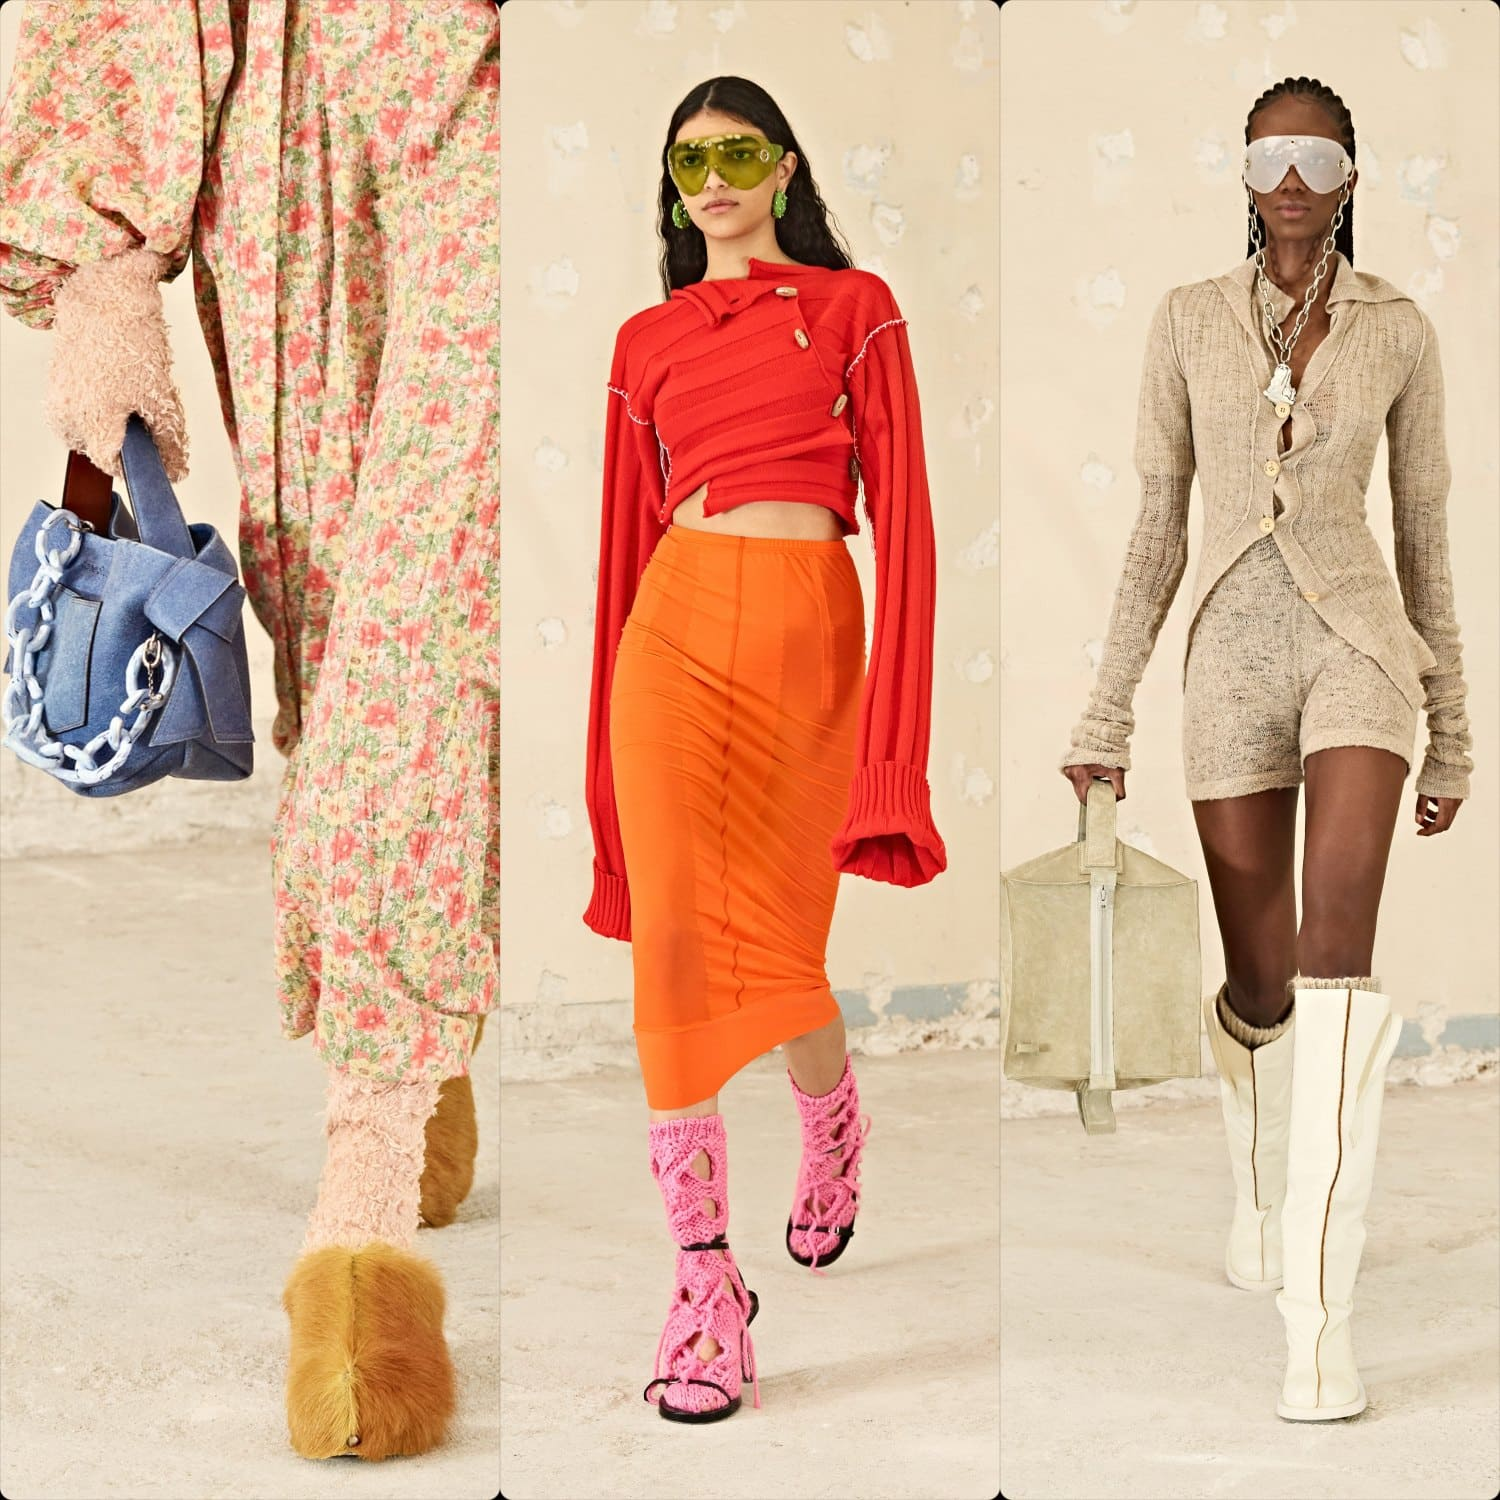 Acne Studios Fall Winter 2021-2022 Paris. RUNWAY MAGAZINE ® Collections. RUNWAY NOW / RUNWAY NEW